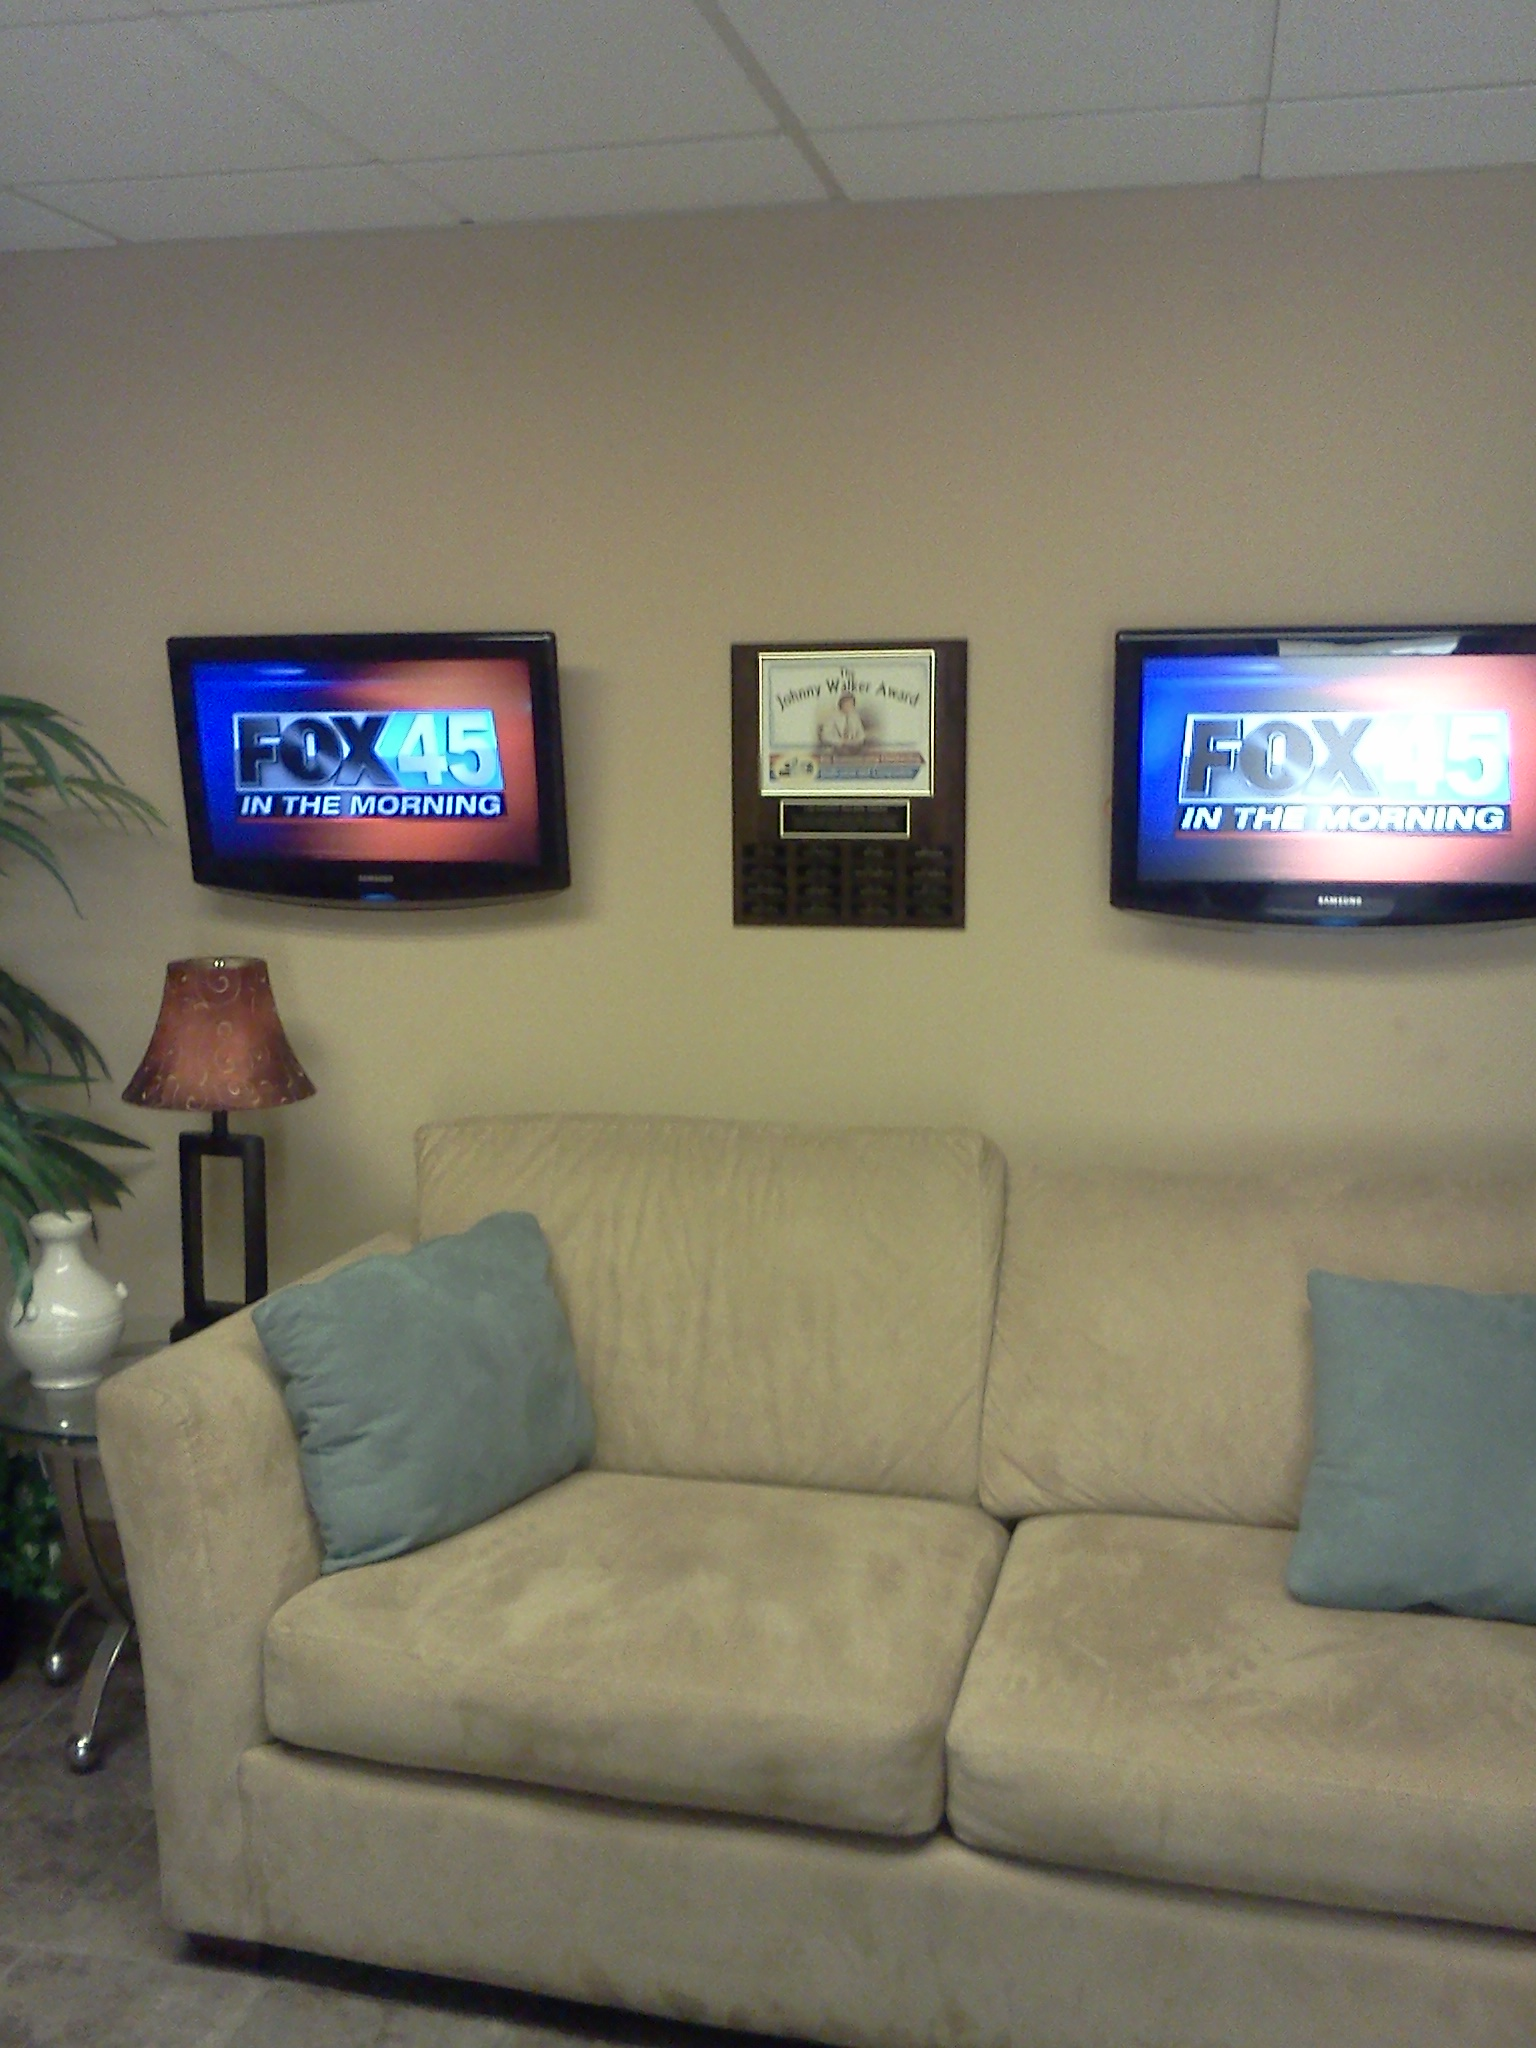 Fox 45 waiting room